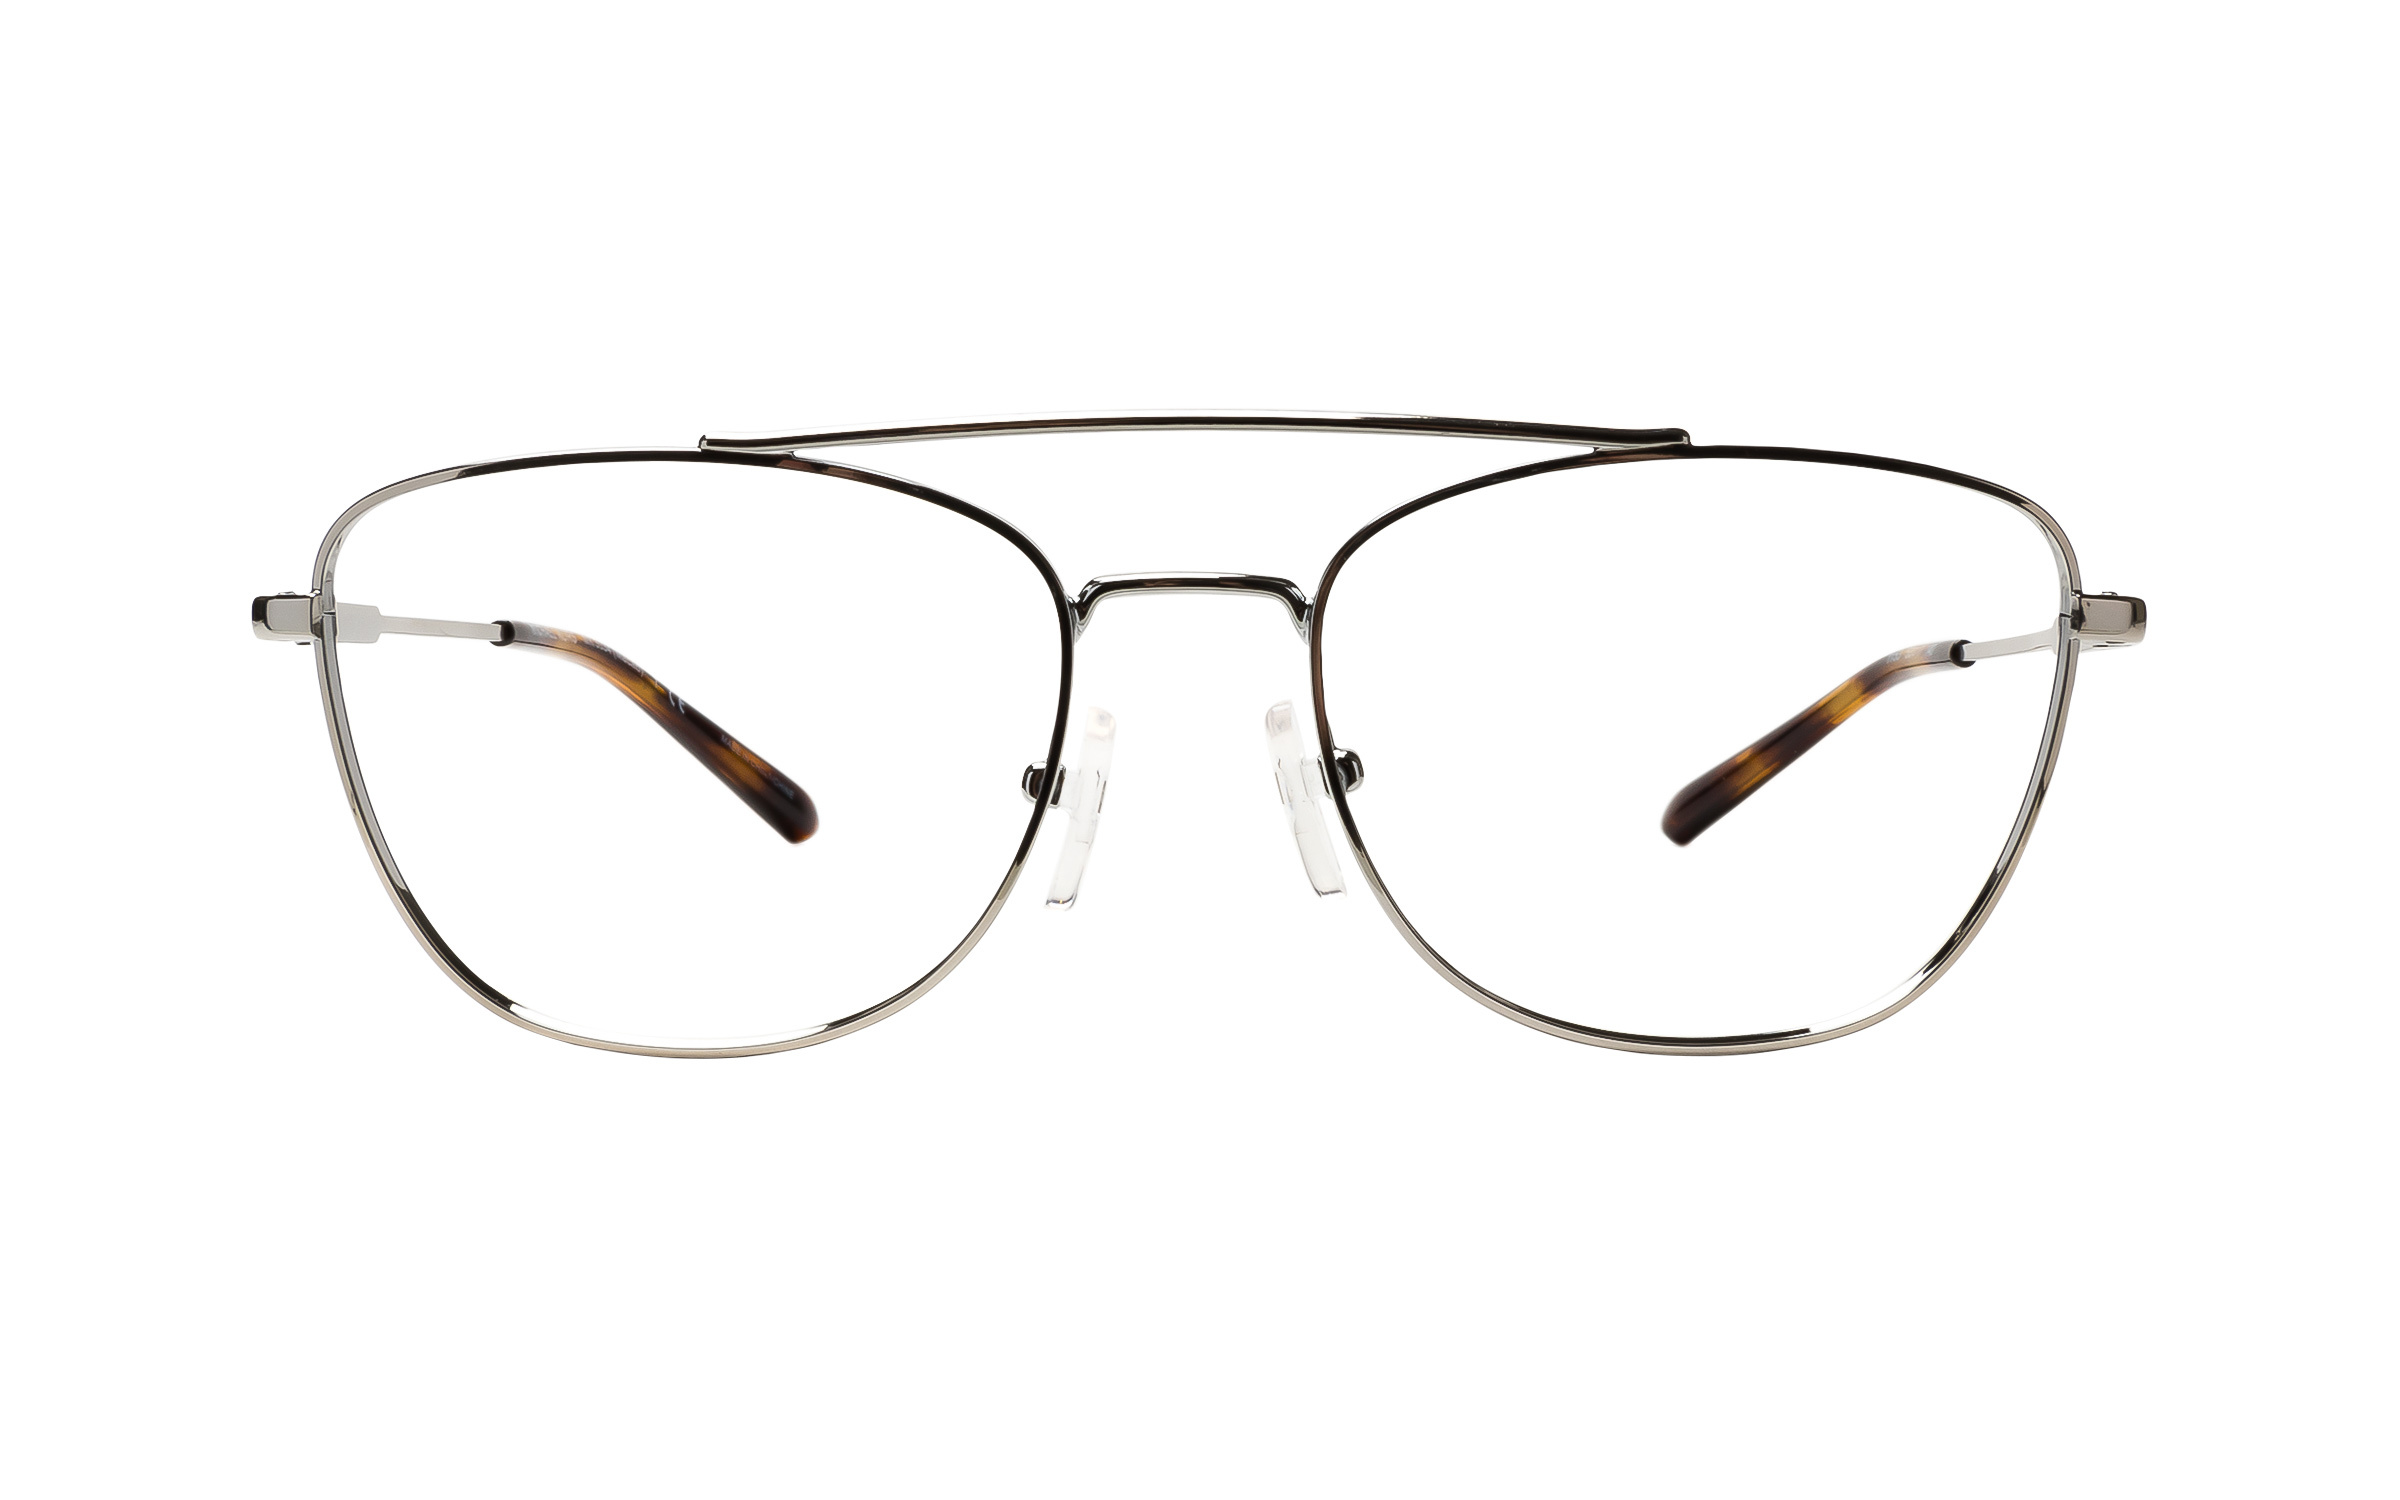 Michael Kors Macao MK3034 1153 (53) Eyeglasses and Frame in Silver | Plastic/Metal